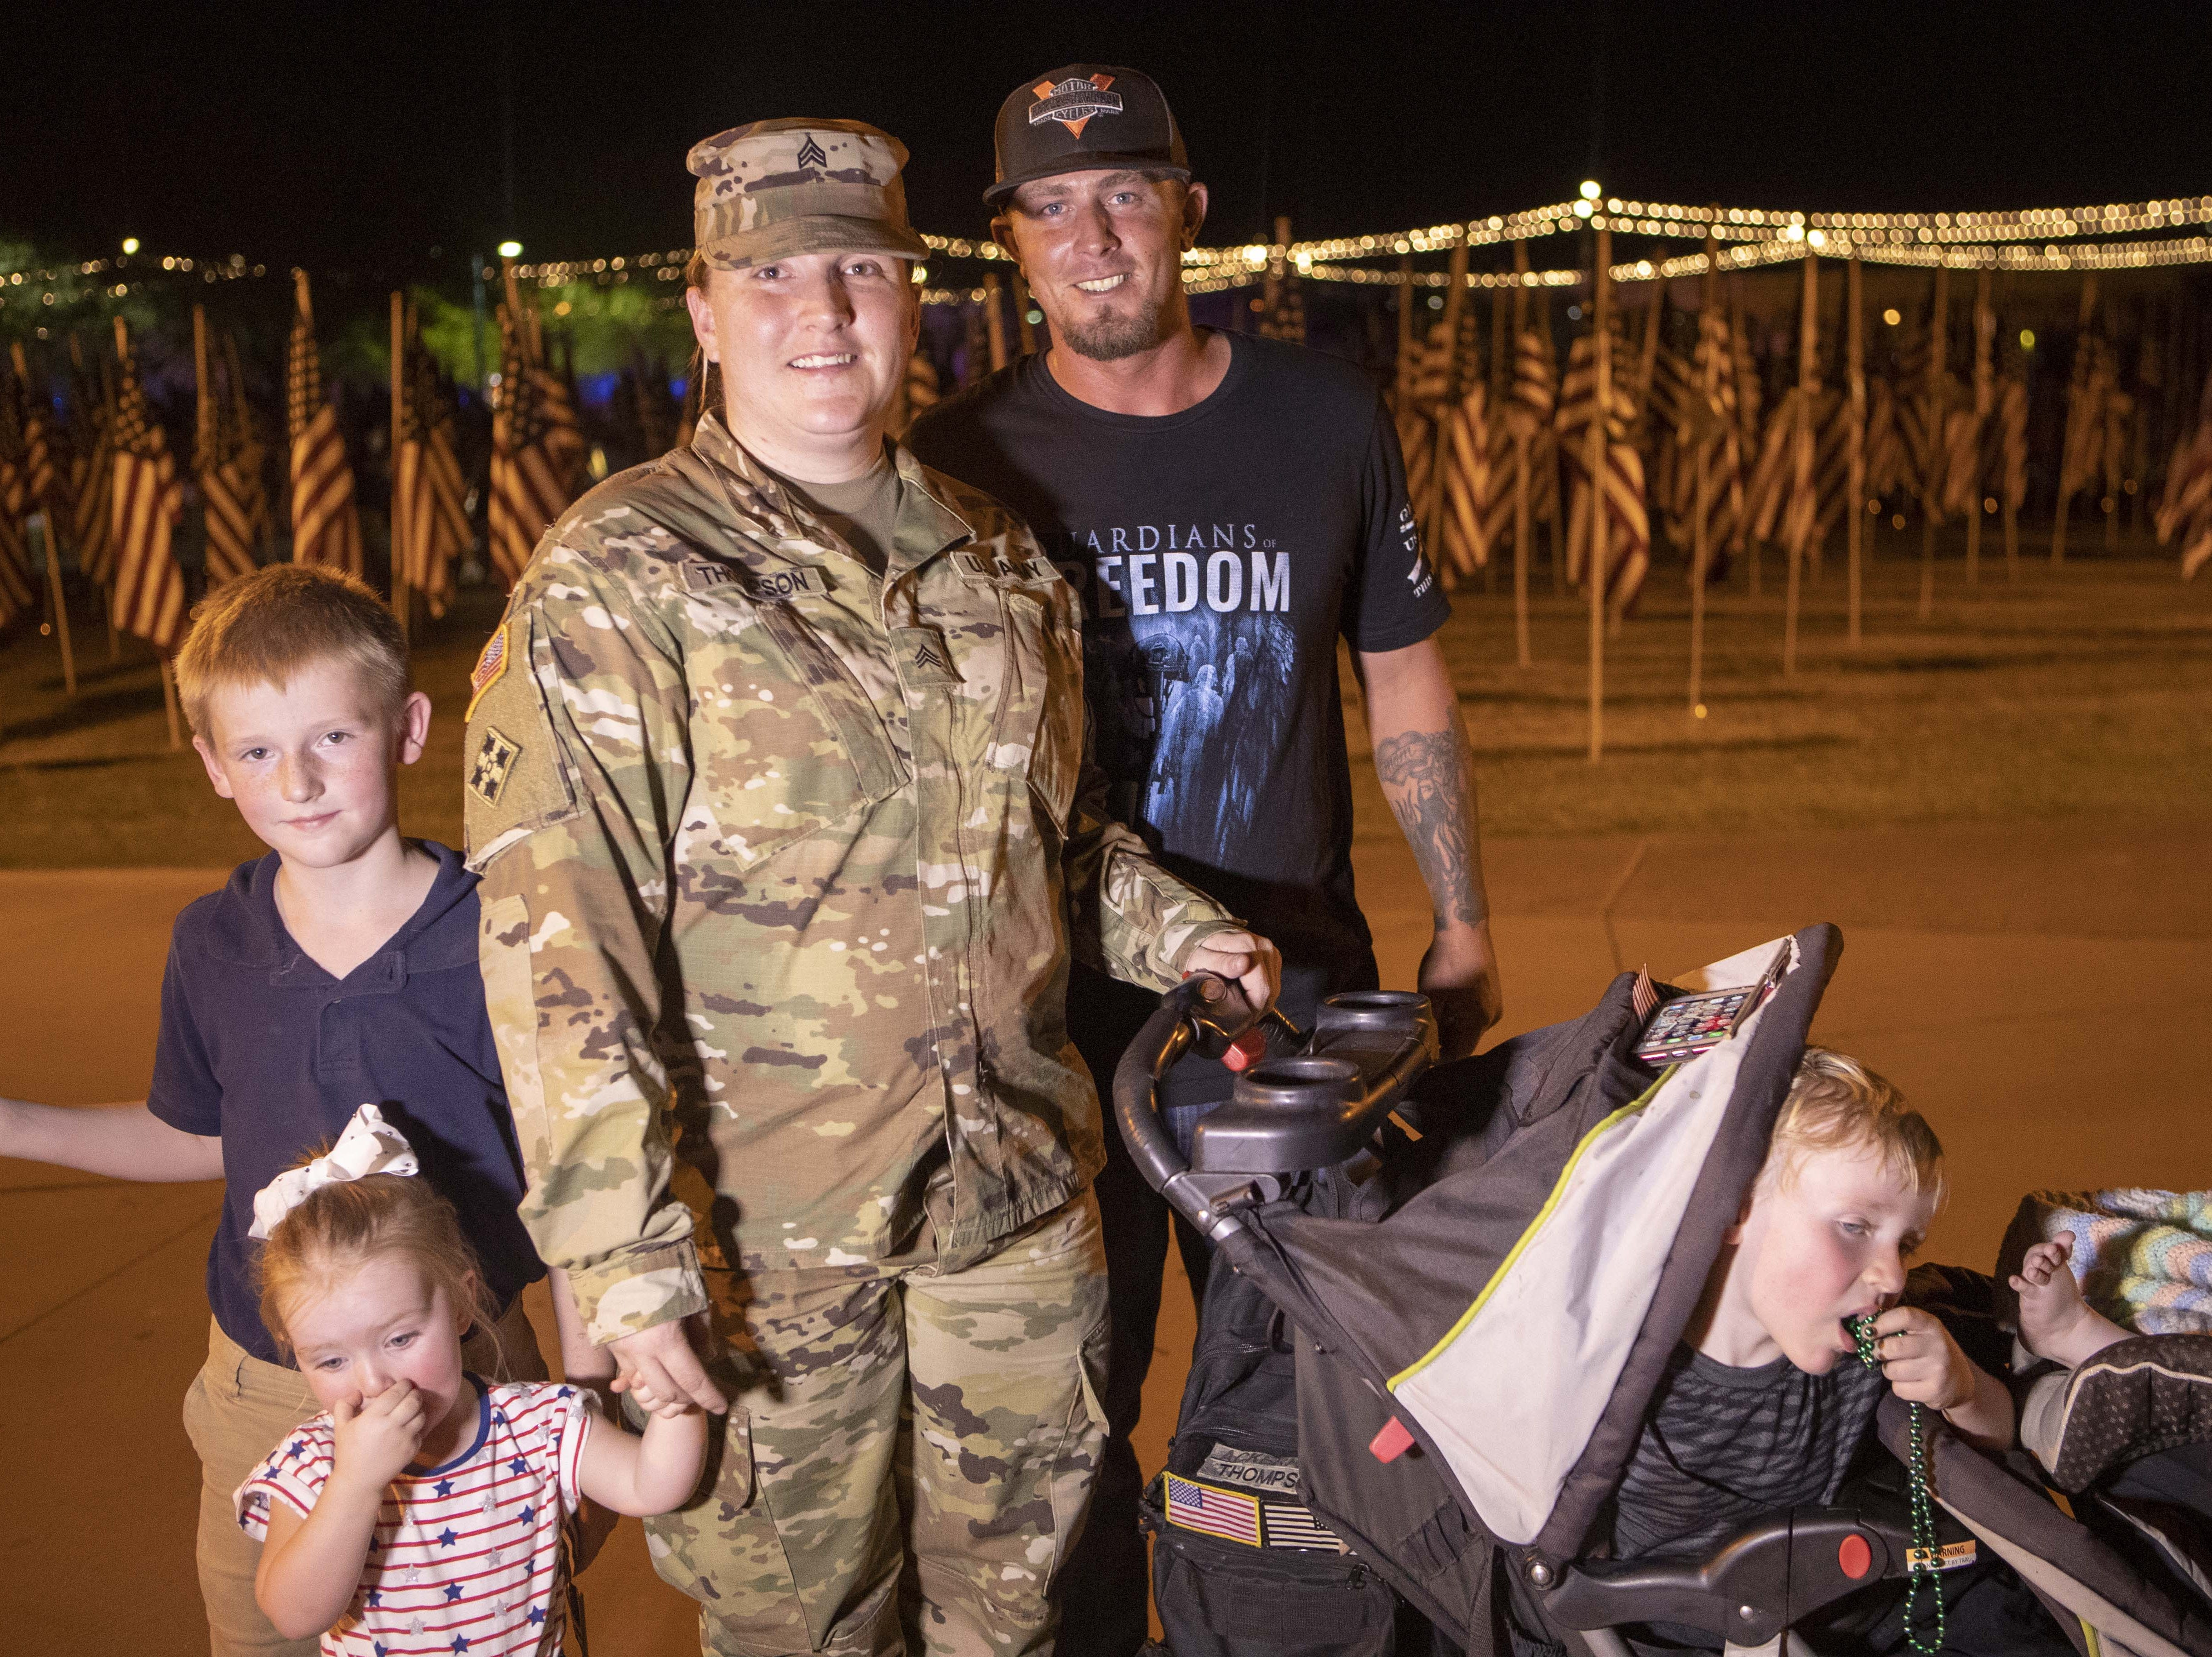 Army Sgt. Ashley Thompson and her boyfriend, Spc. Steven Ackerman, and Thompson's children participated in the ceremony at the Healing Field at Tempe Beach Park on Sept. 11, 2018.